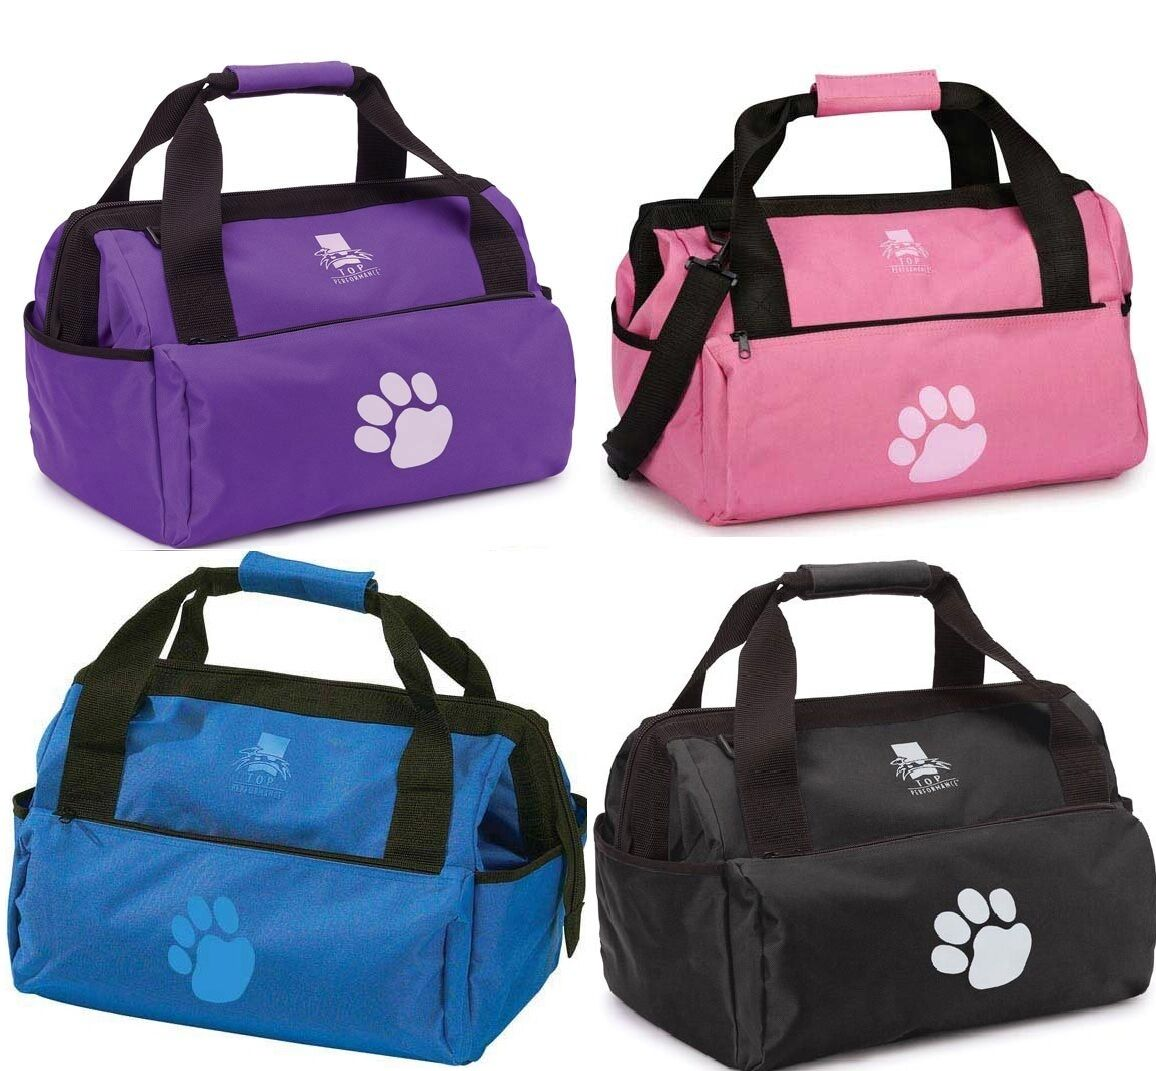 Top Performance Performance Performance Groomer's DUFFLE BAG Pet GROOMING Travel Storage Tool Tote Case 8a1114